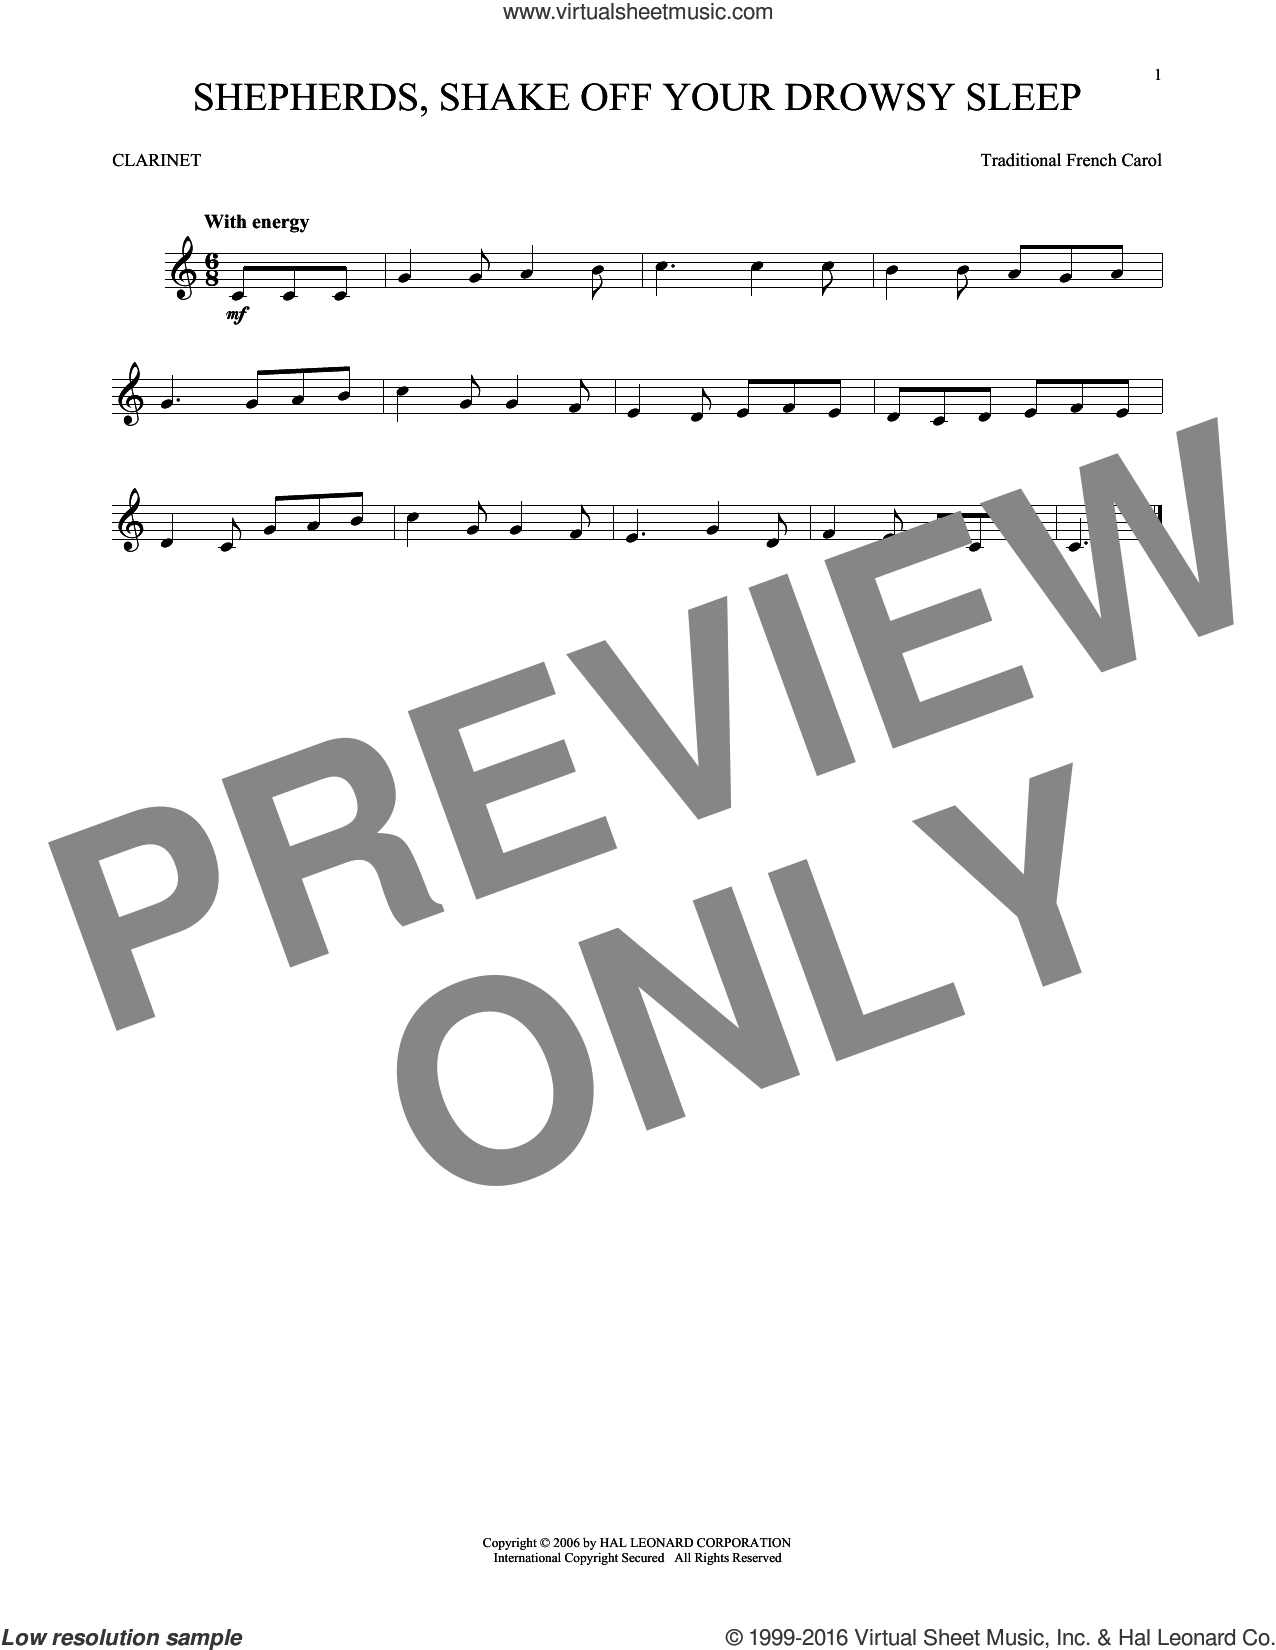 Shepherds, Shake Off Your Drowsy Sleep sheet music for clarinet solo, intermediate skill level